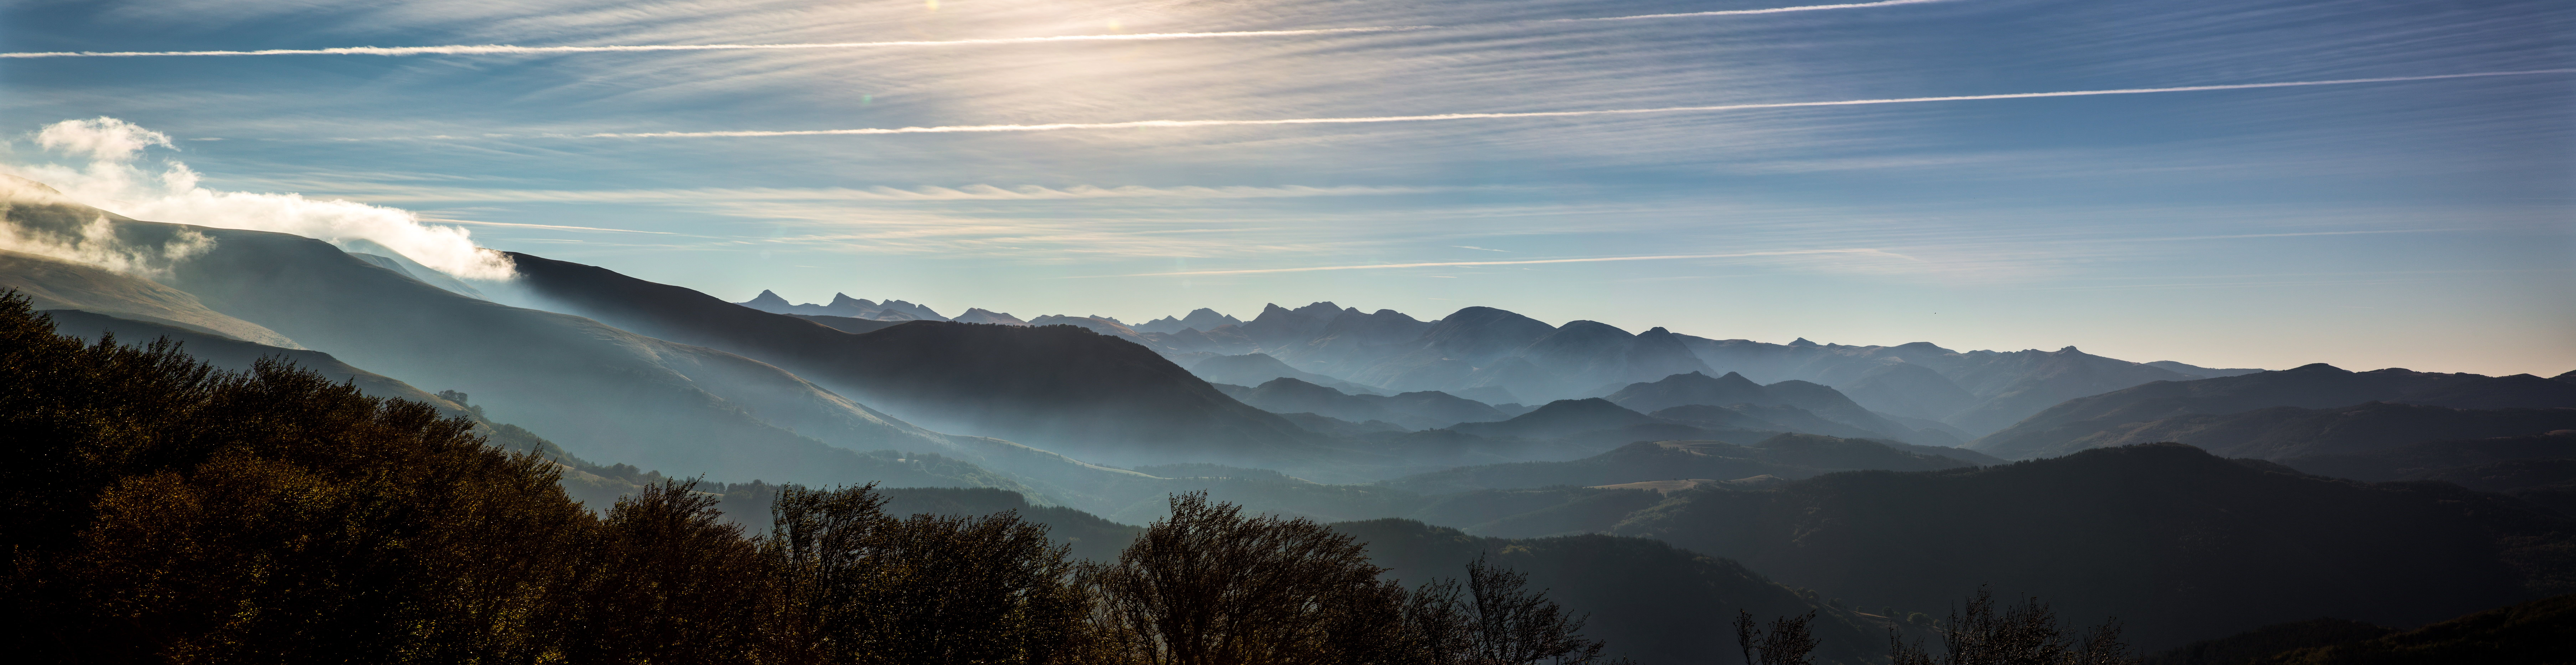 Panorama Landscape Photography Of Mountains Manana Fresca En Larraun Panorama Landscape Pho Landscape Photography Mountain Landscape Photography Landscape